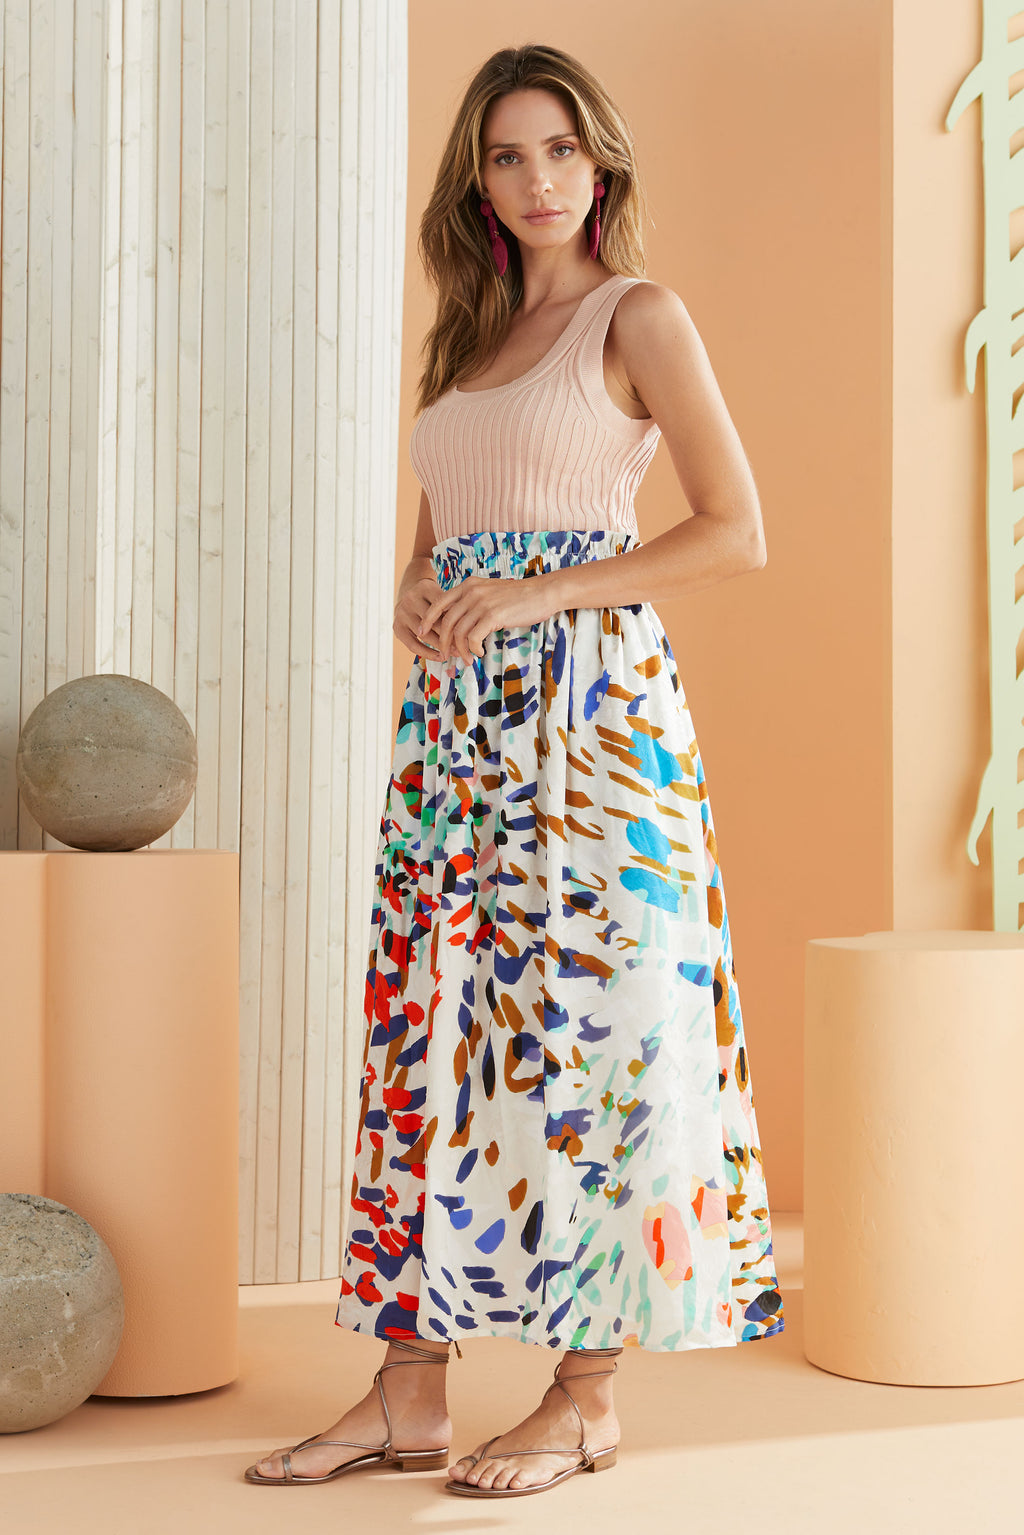 colorful animal print maxi skirt worn with pink ribbed tank